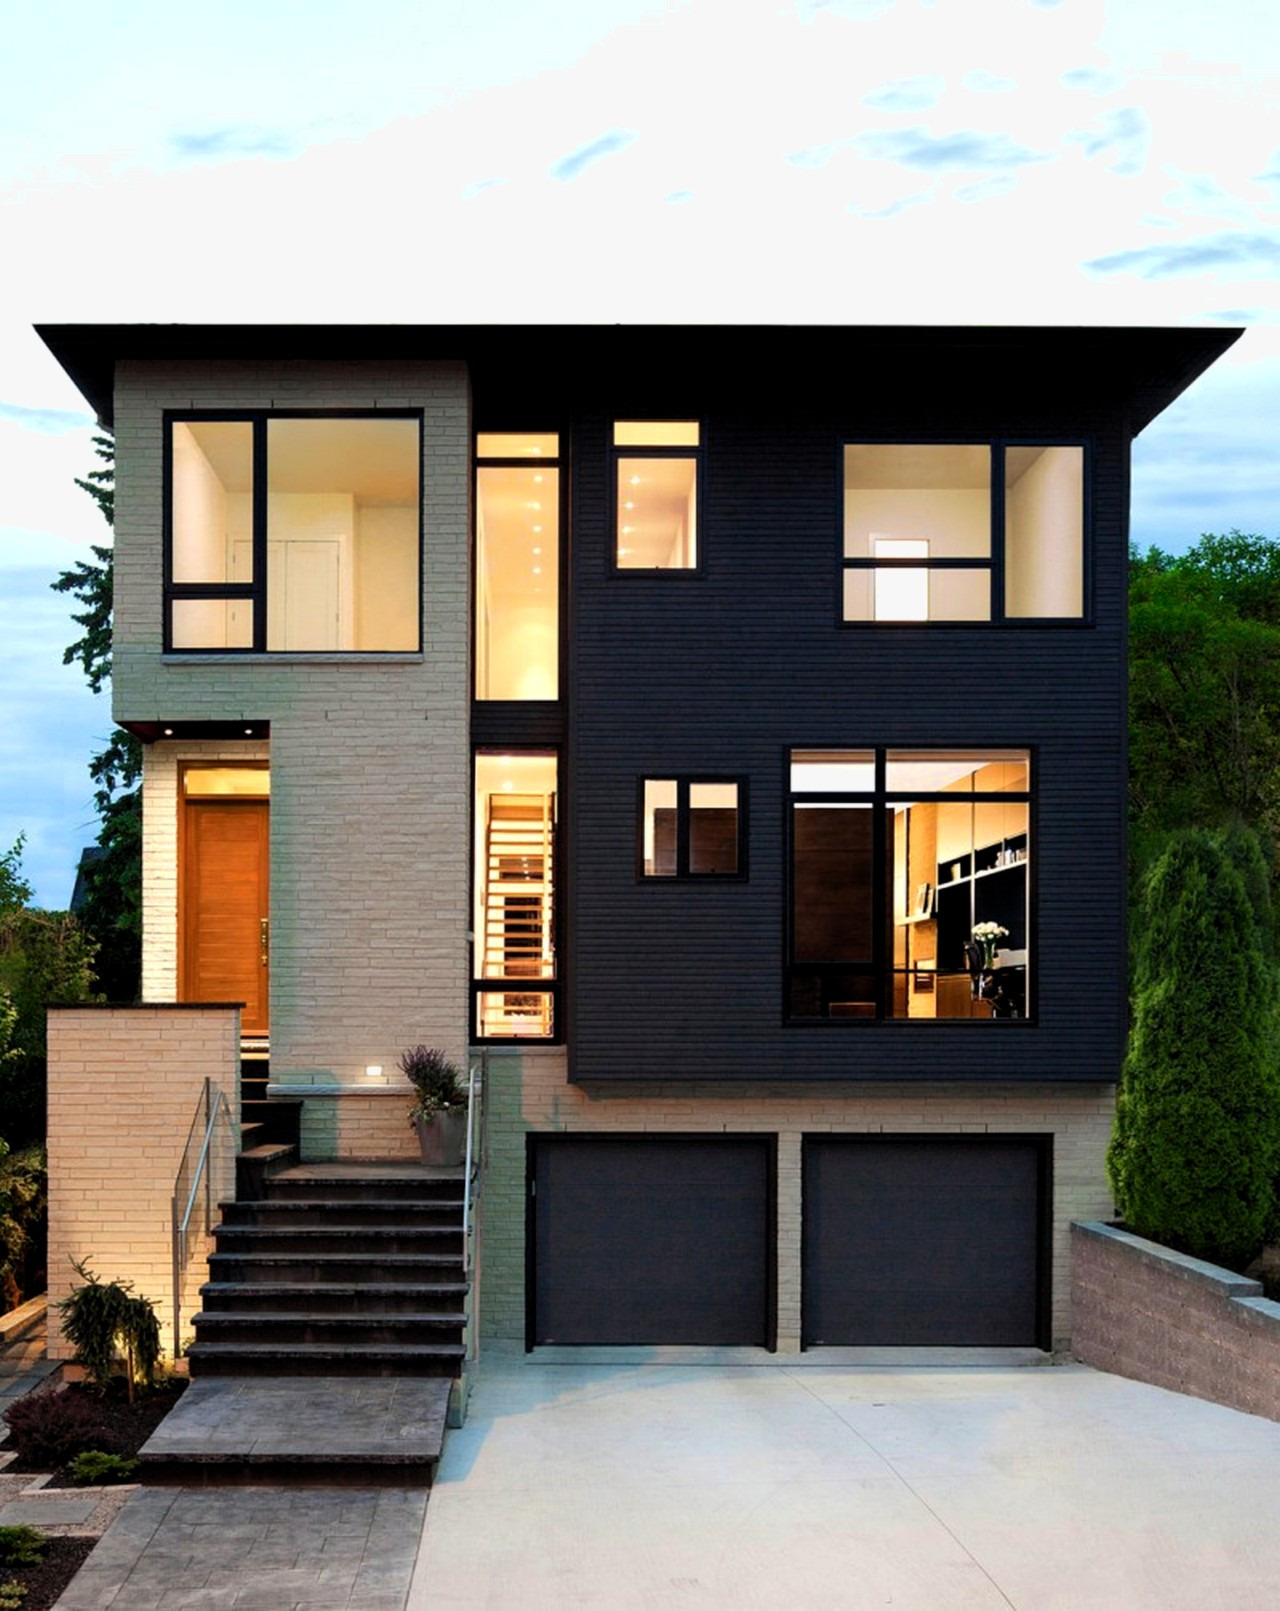 minimalist home design 2016 hovgallery in minimalist house ideas black